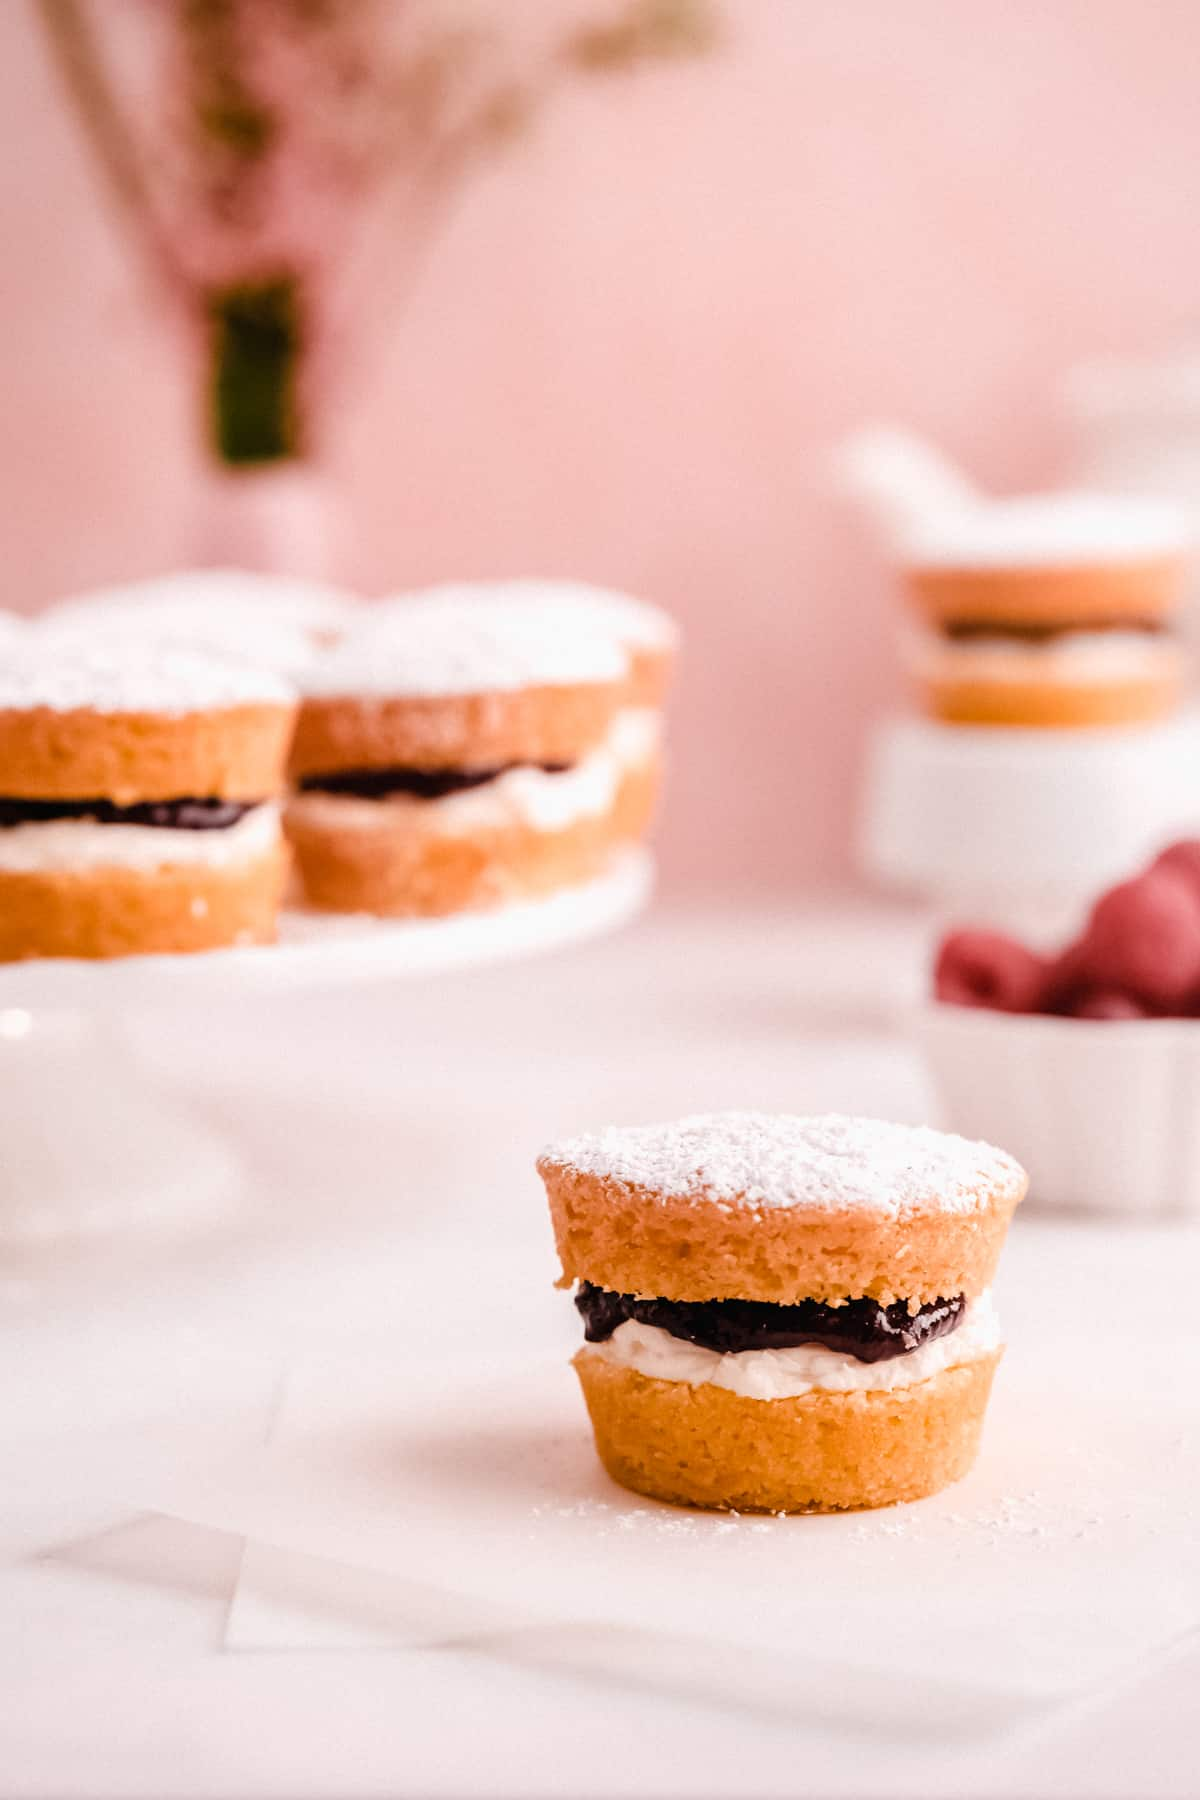 mini victoria sponge cakes filled with jam on a table and cake plate with raspberries and a teapot in the background